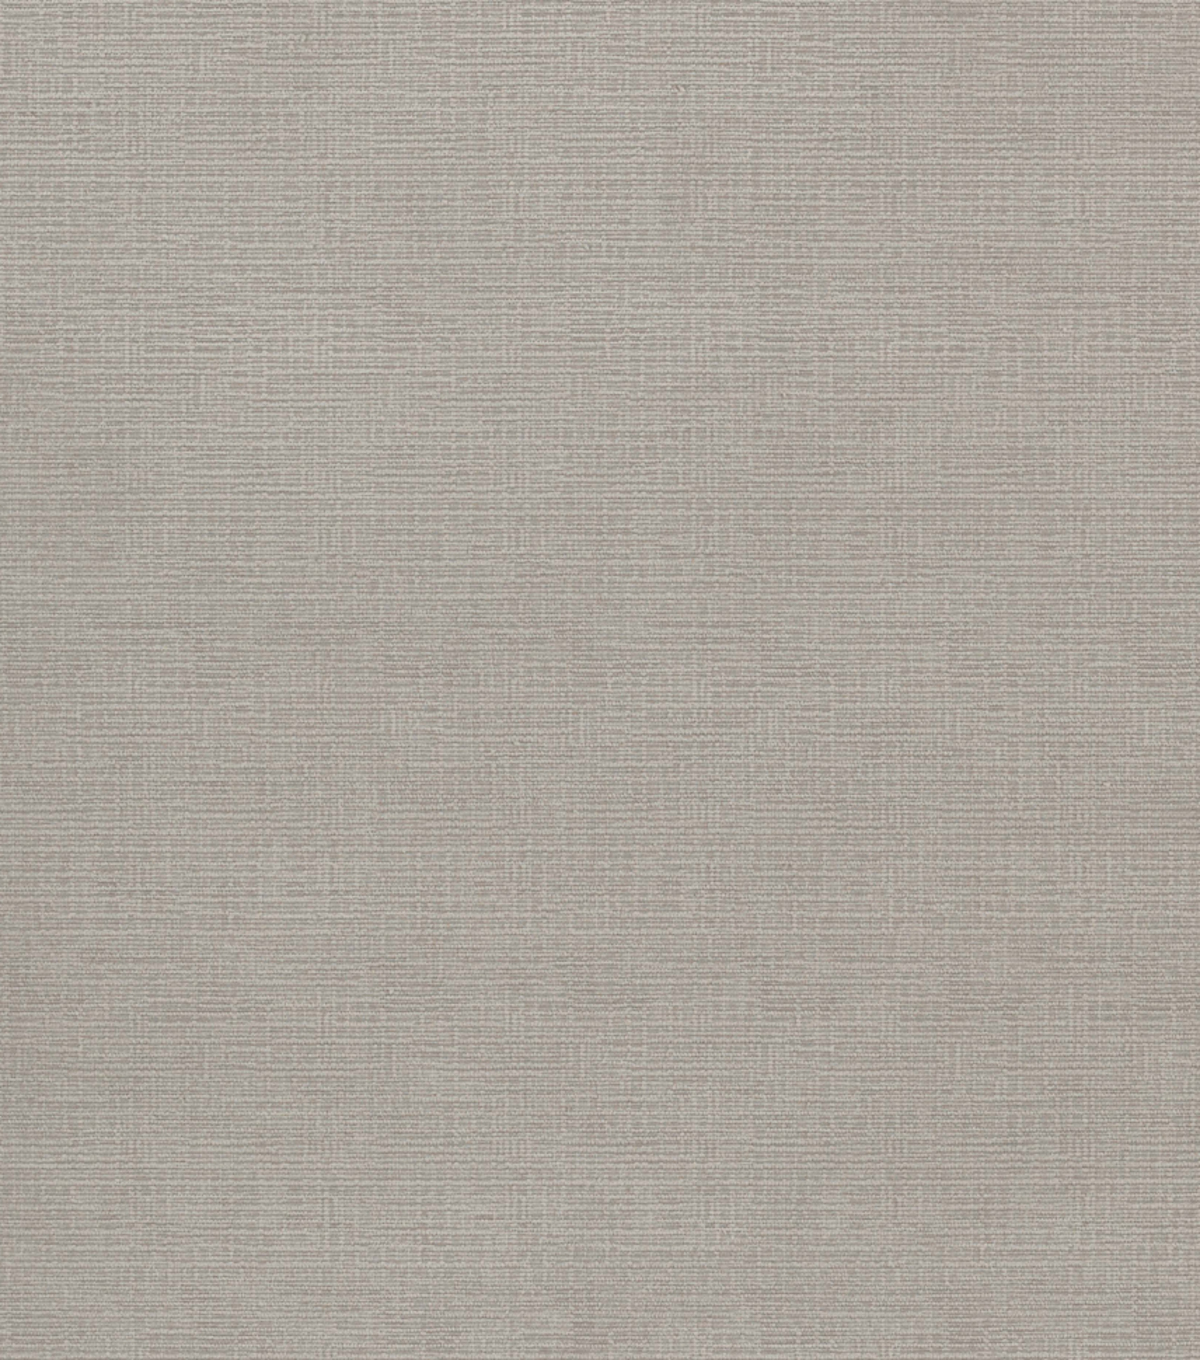 Home Decor 8\u0022x8\u0022 Fabric Swatch-Aspen Cement